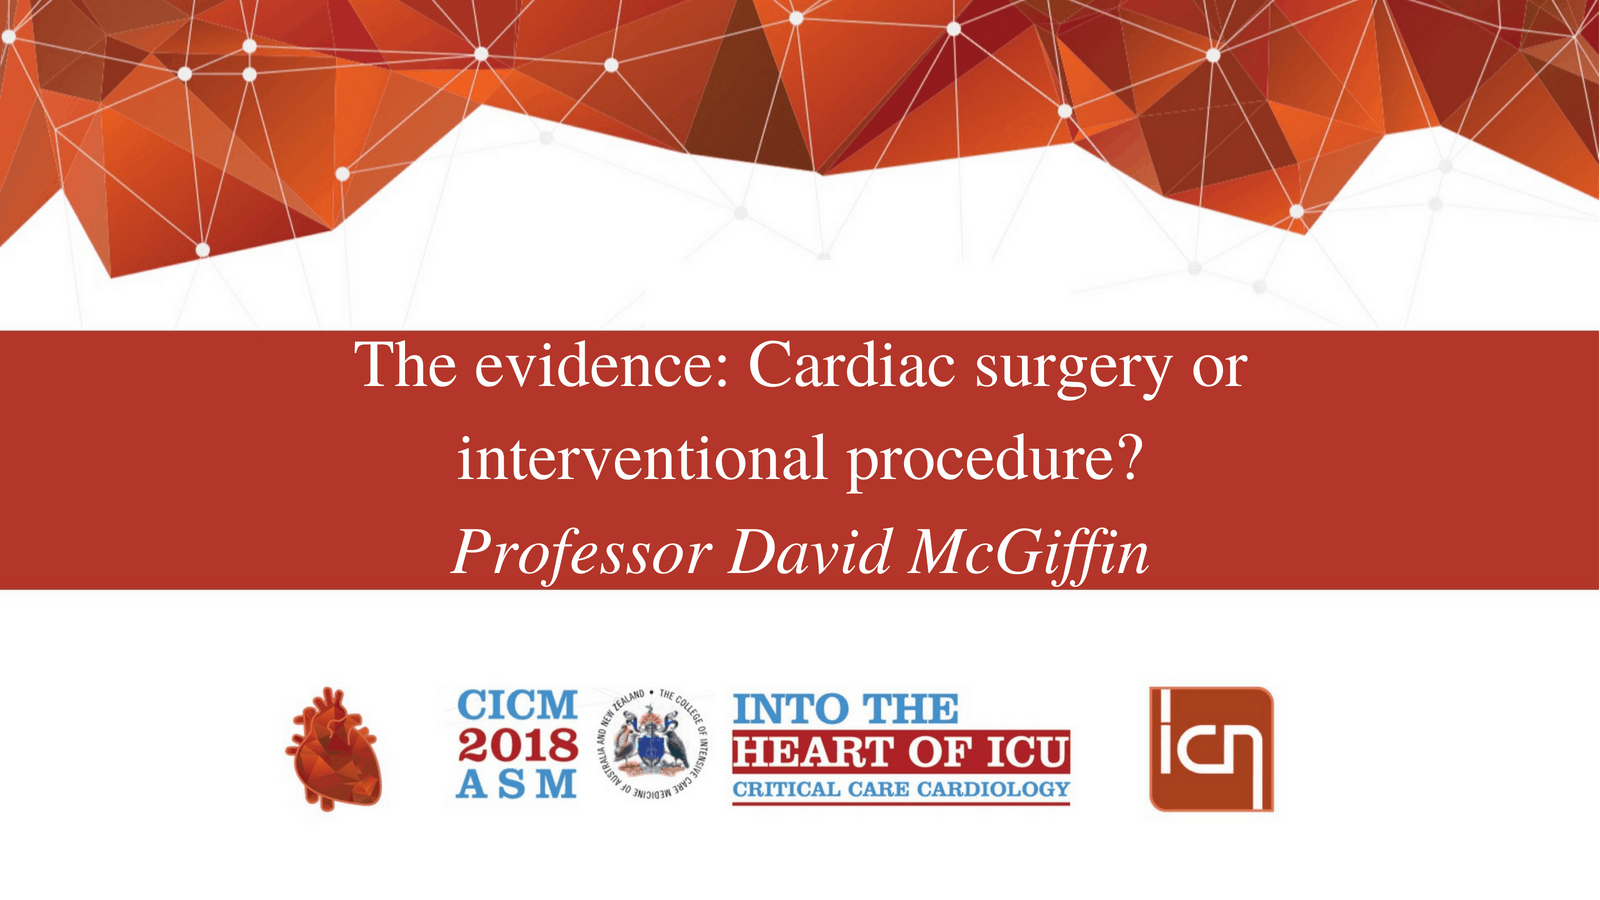 The evidence: Cardiac surgery or interventional procedure?